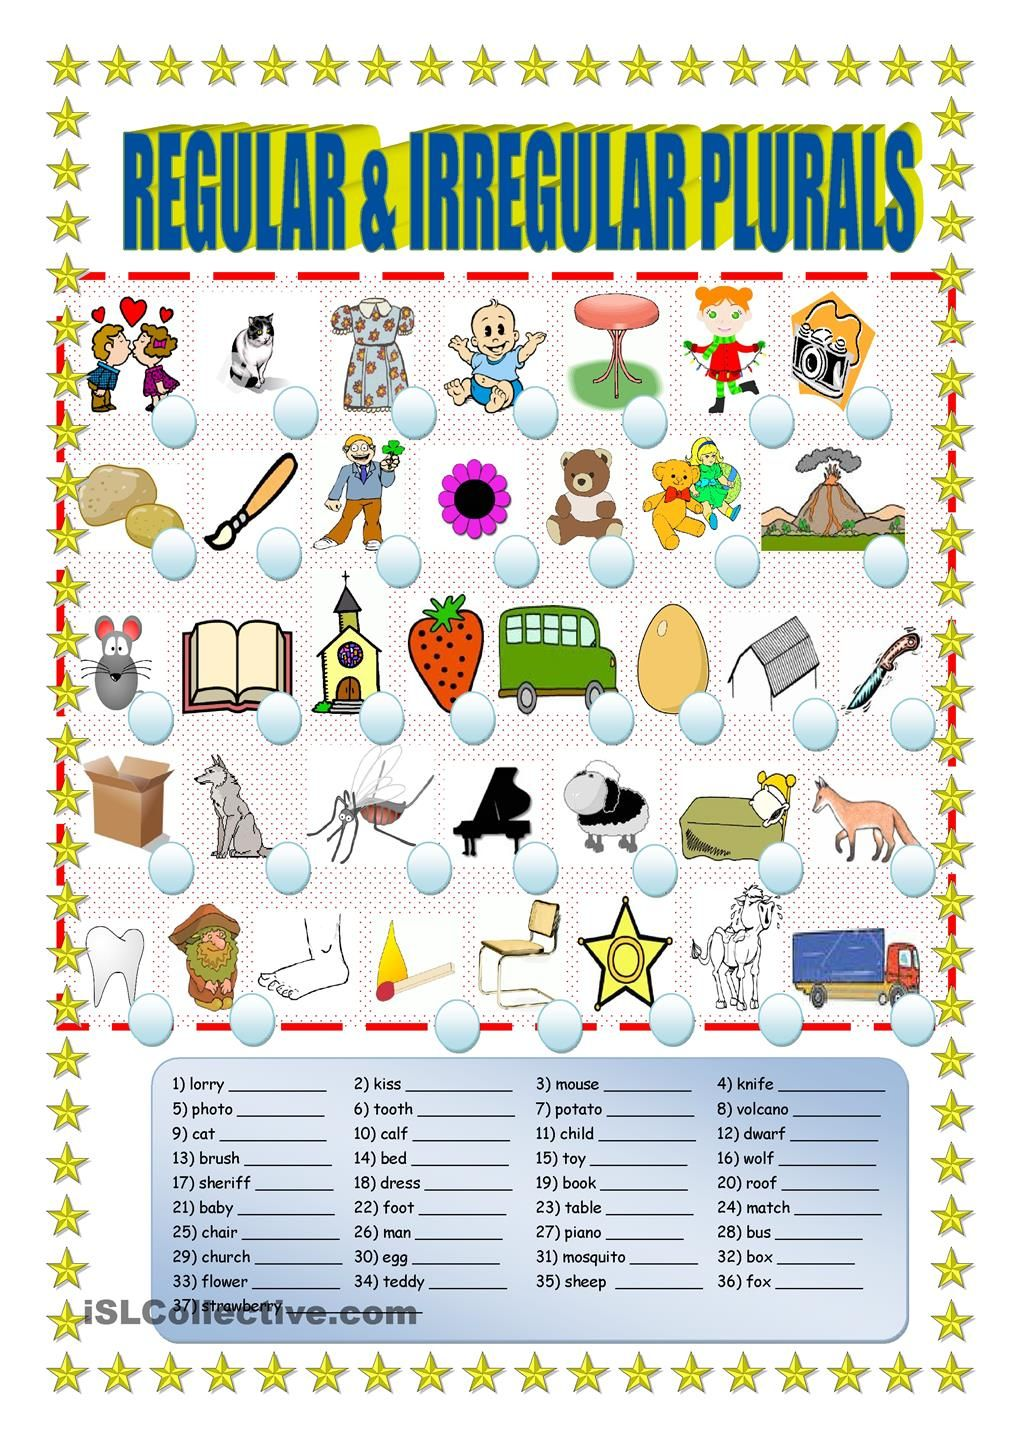 Regular and irregular plurals | worksheets, activities | Pinterest ...